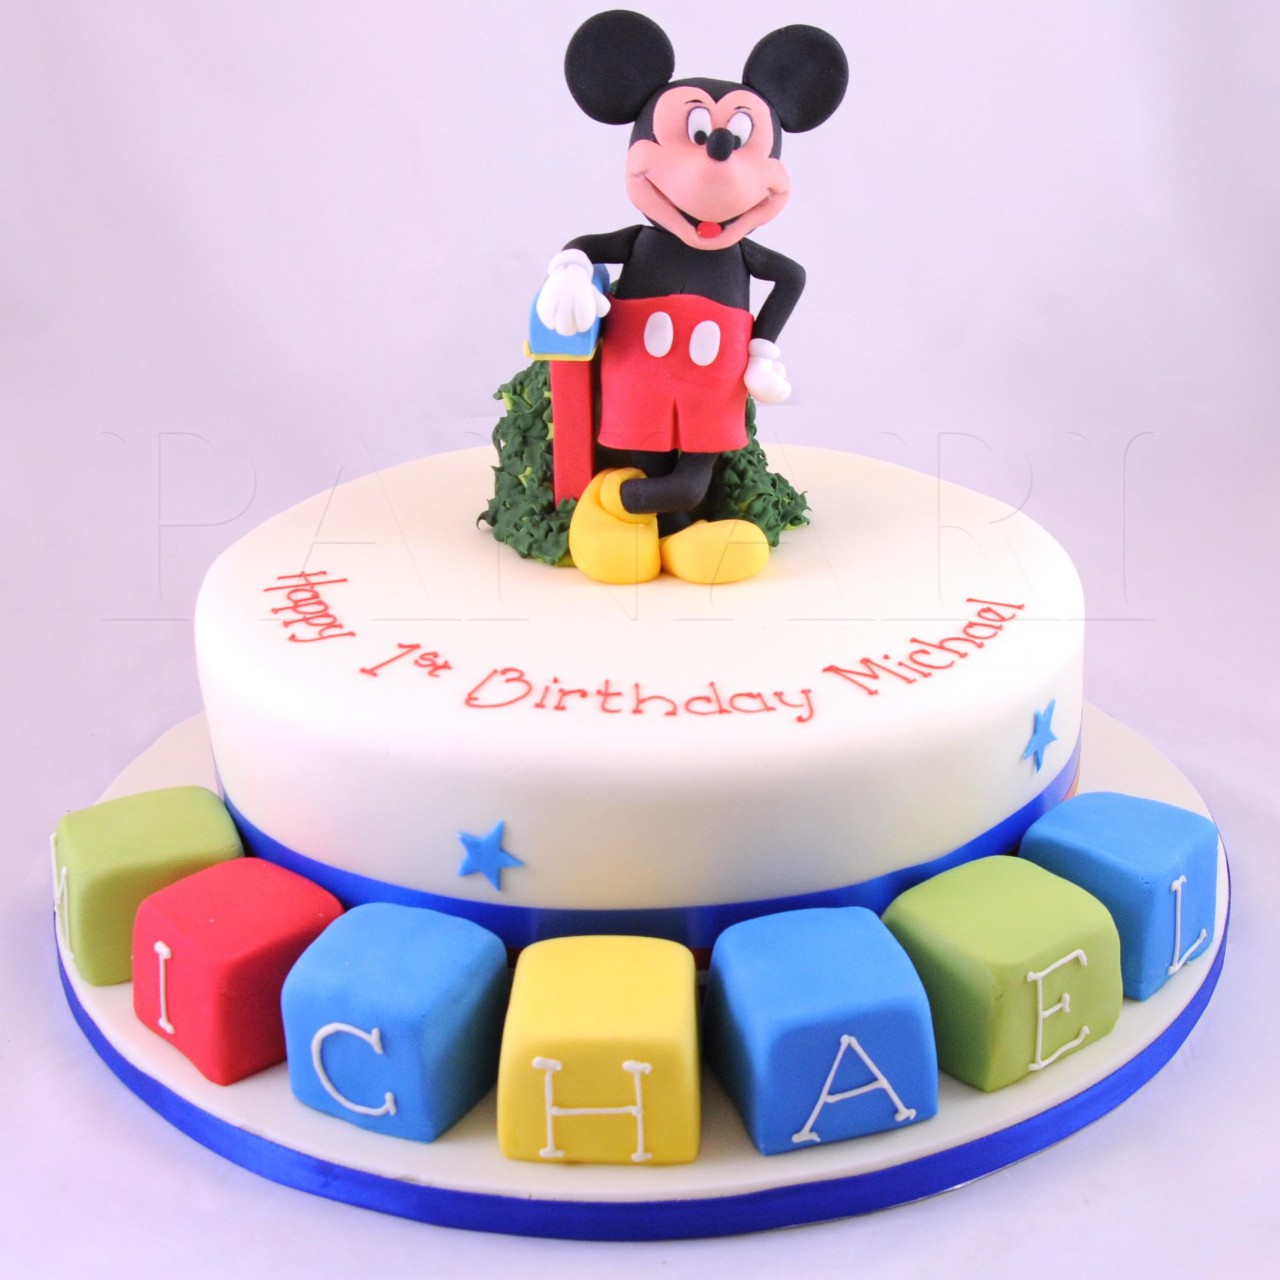 Mickey Mouse Cake Decorations   Decorated Cakes For Birthday Cake